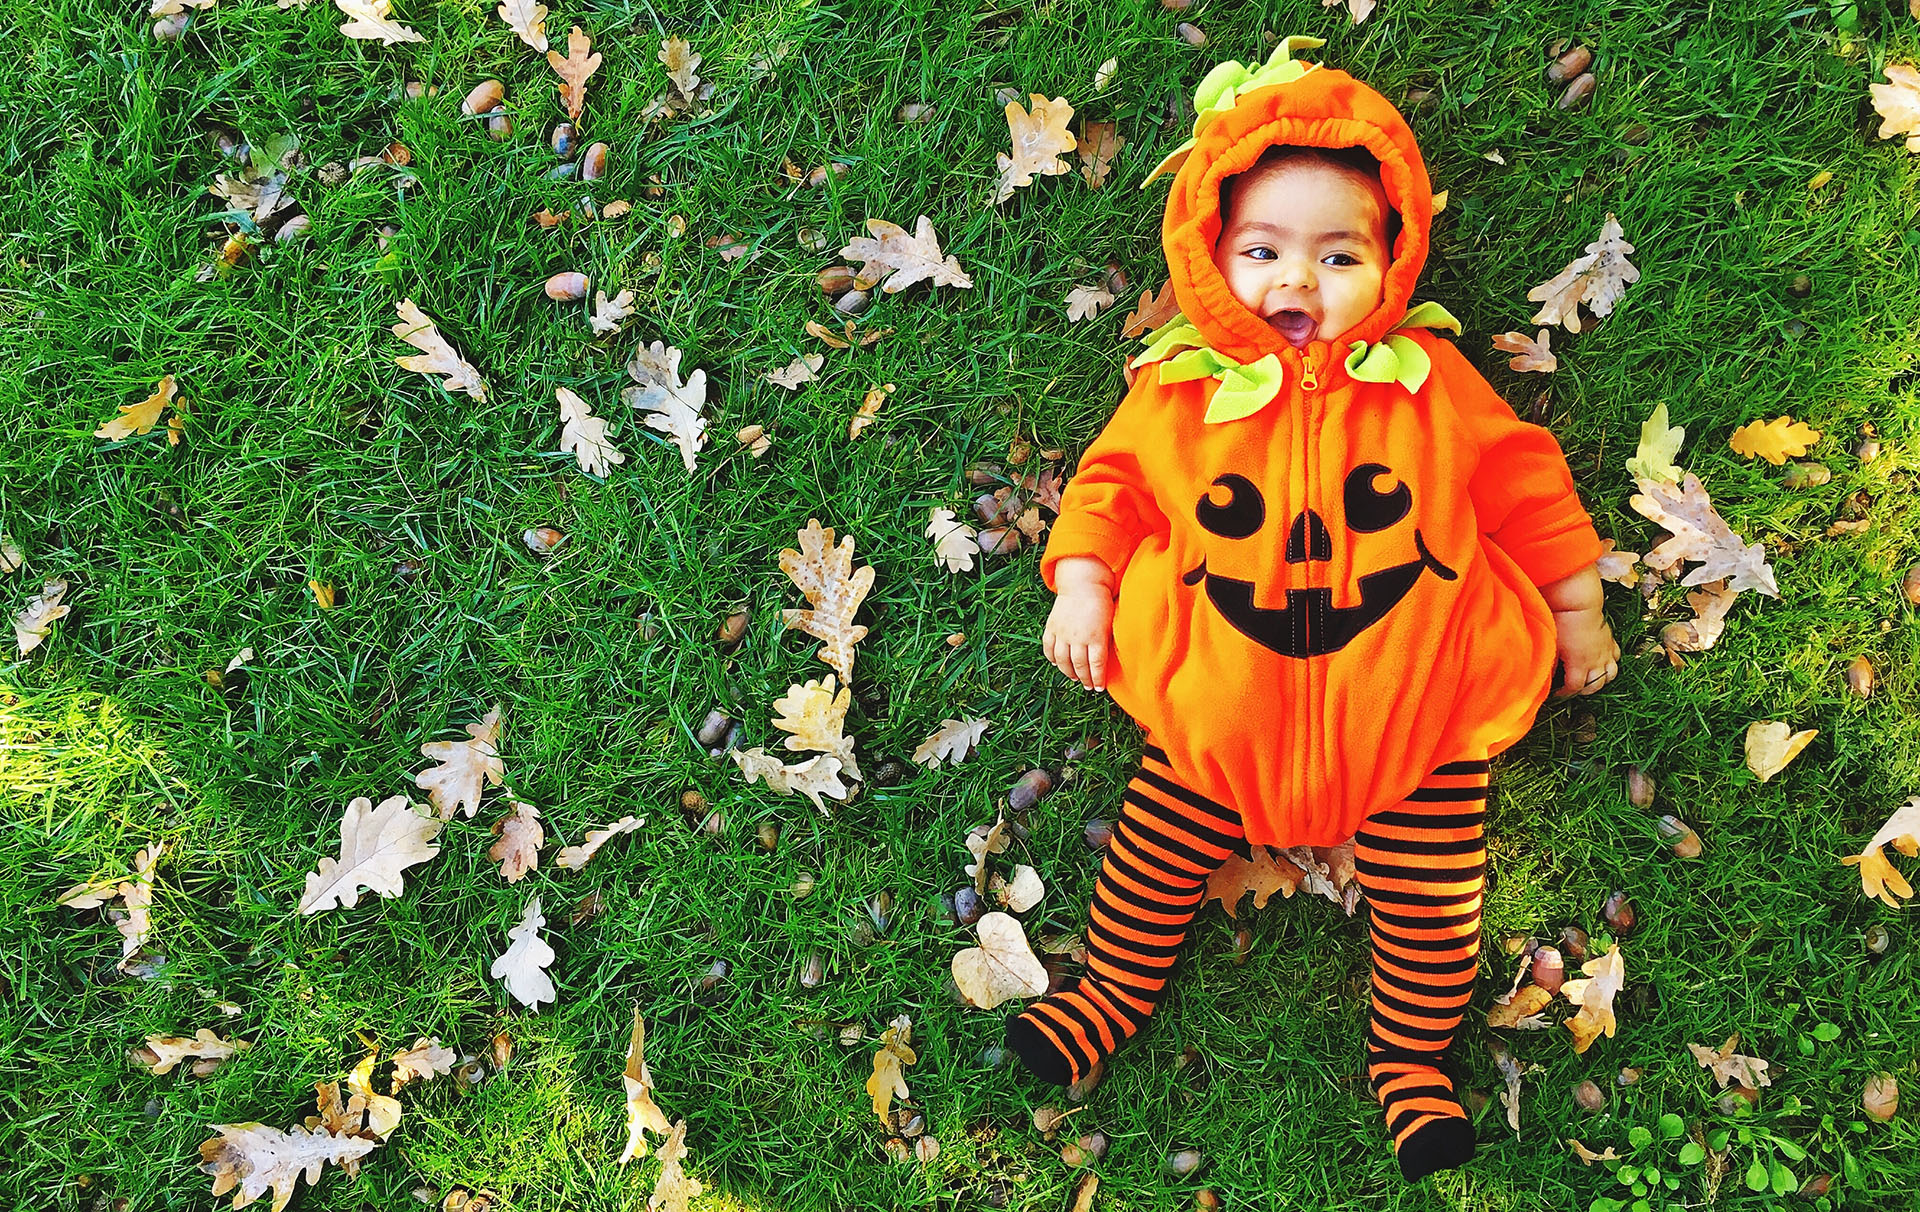 baby halloween costumes: fun ideas for your baby